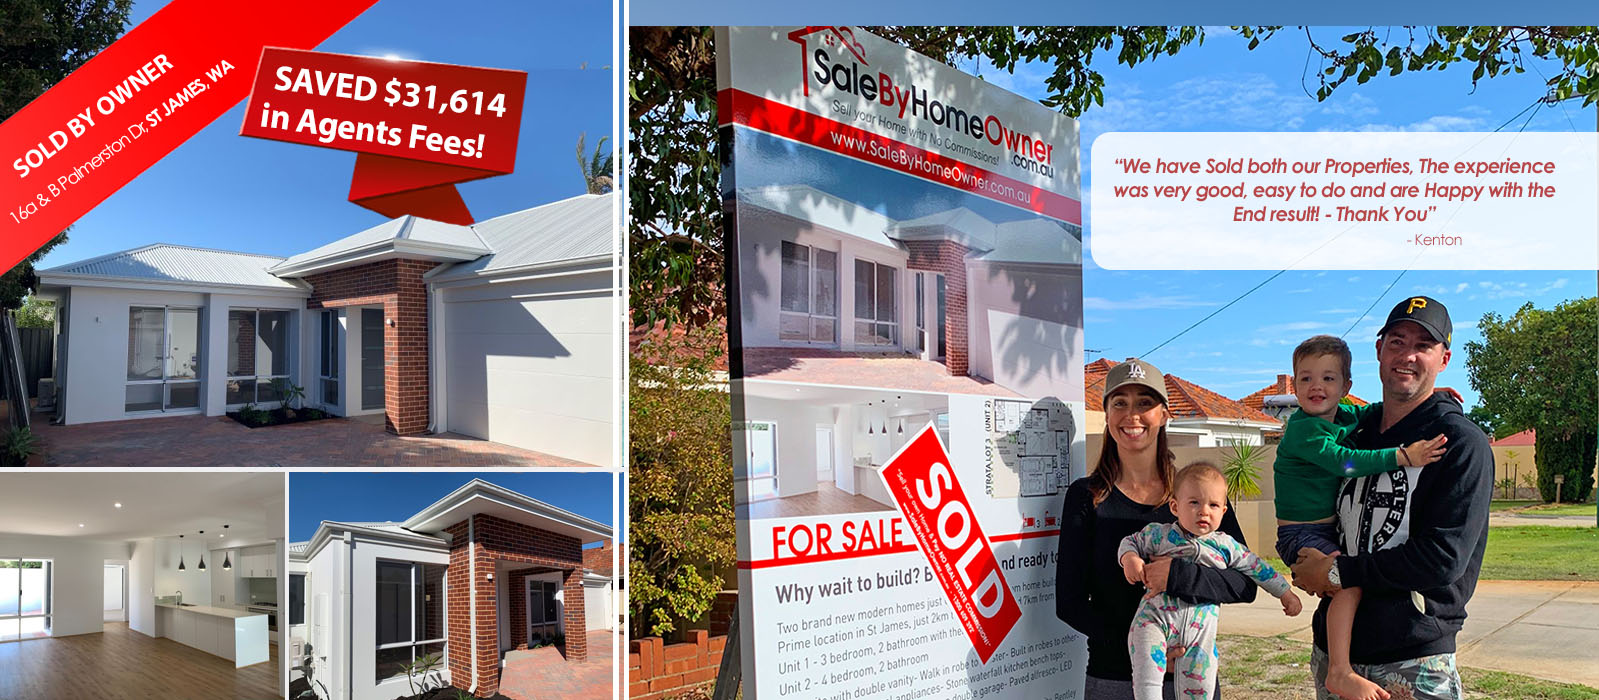 For Sale By Owner in SA, view Houses For Sale Privately in South Australia